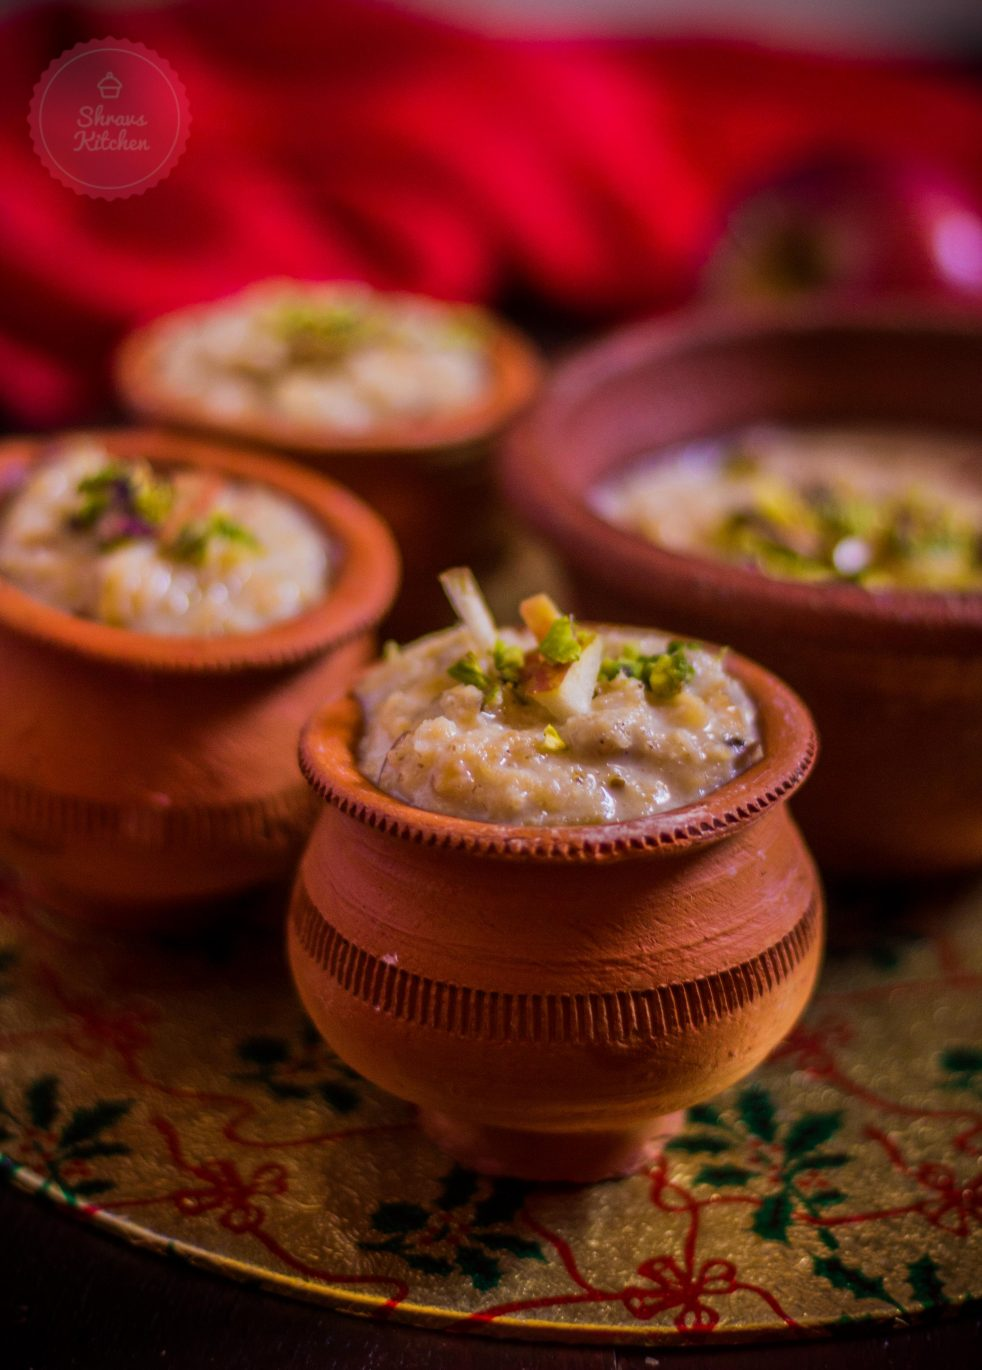 oats apple phirni / phirni recipe / apple dessert